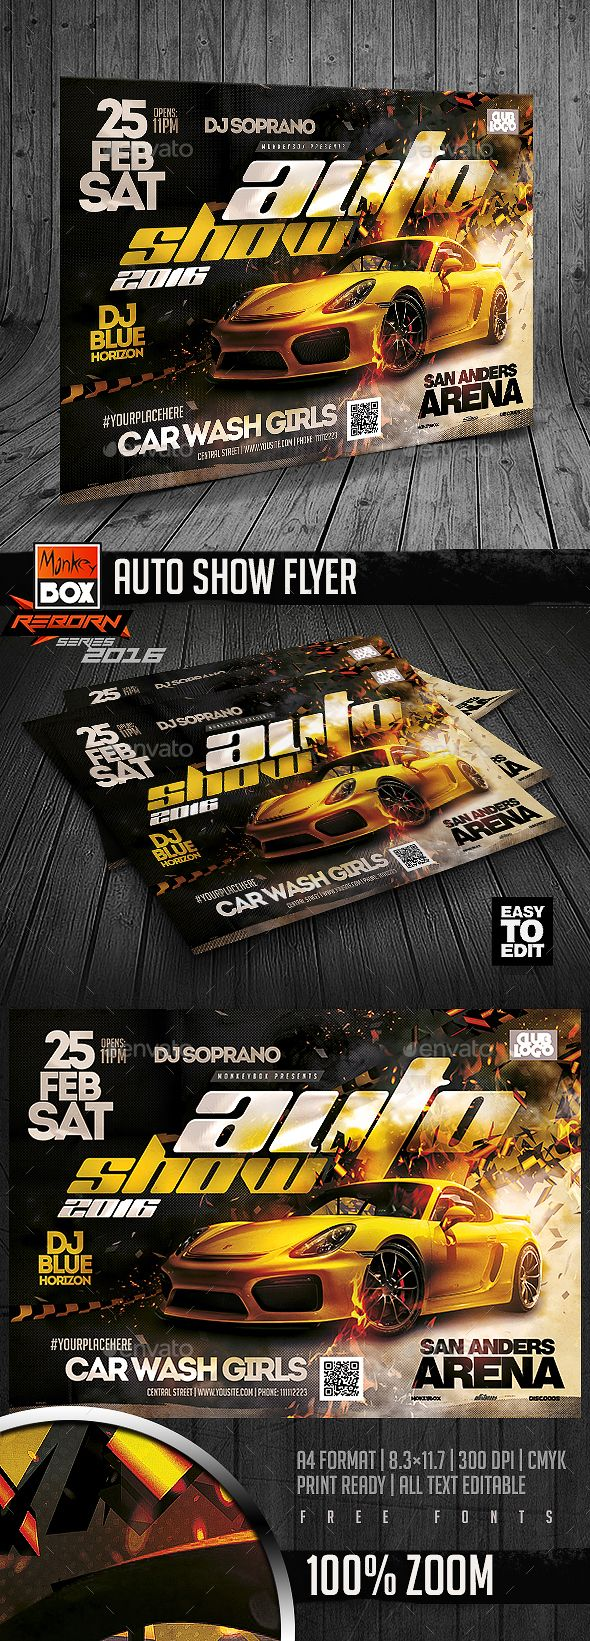 Auto Show Flyer  Flyer Template Photoshop And Template